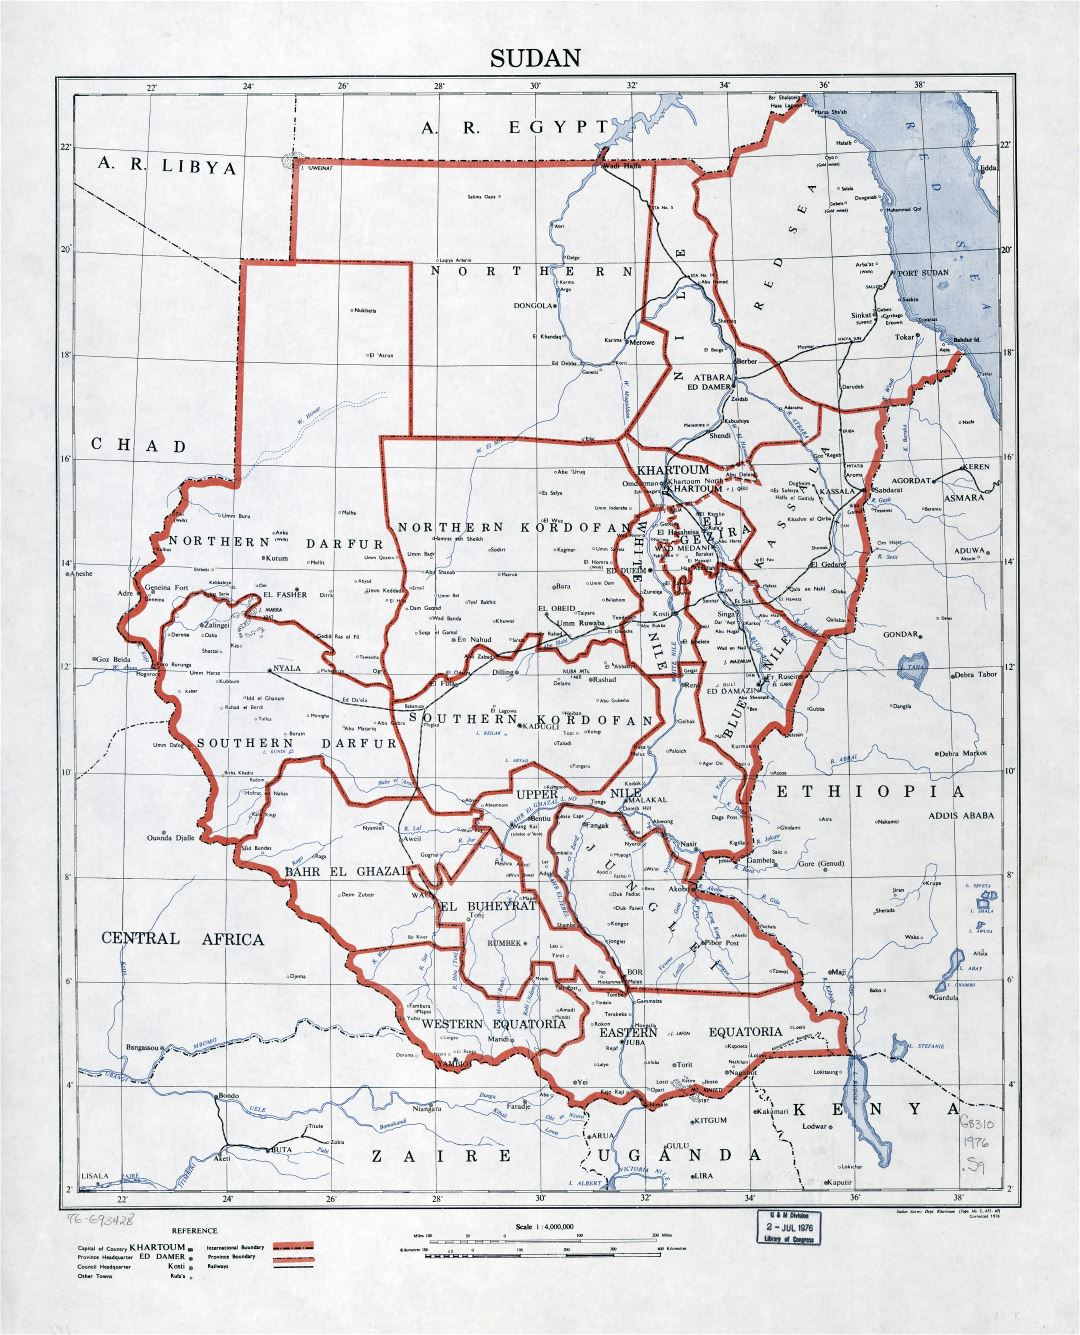 Large scale detailed political and administrative map of Sudan with railroads and cities - 1976